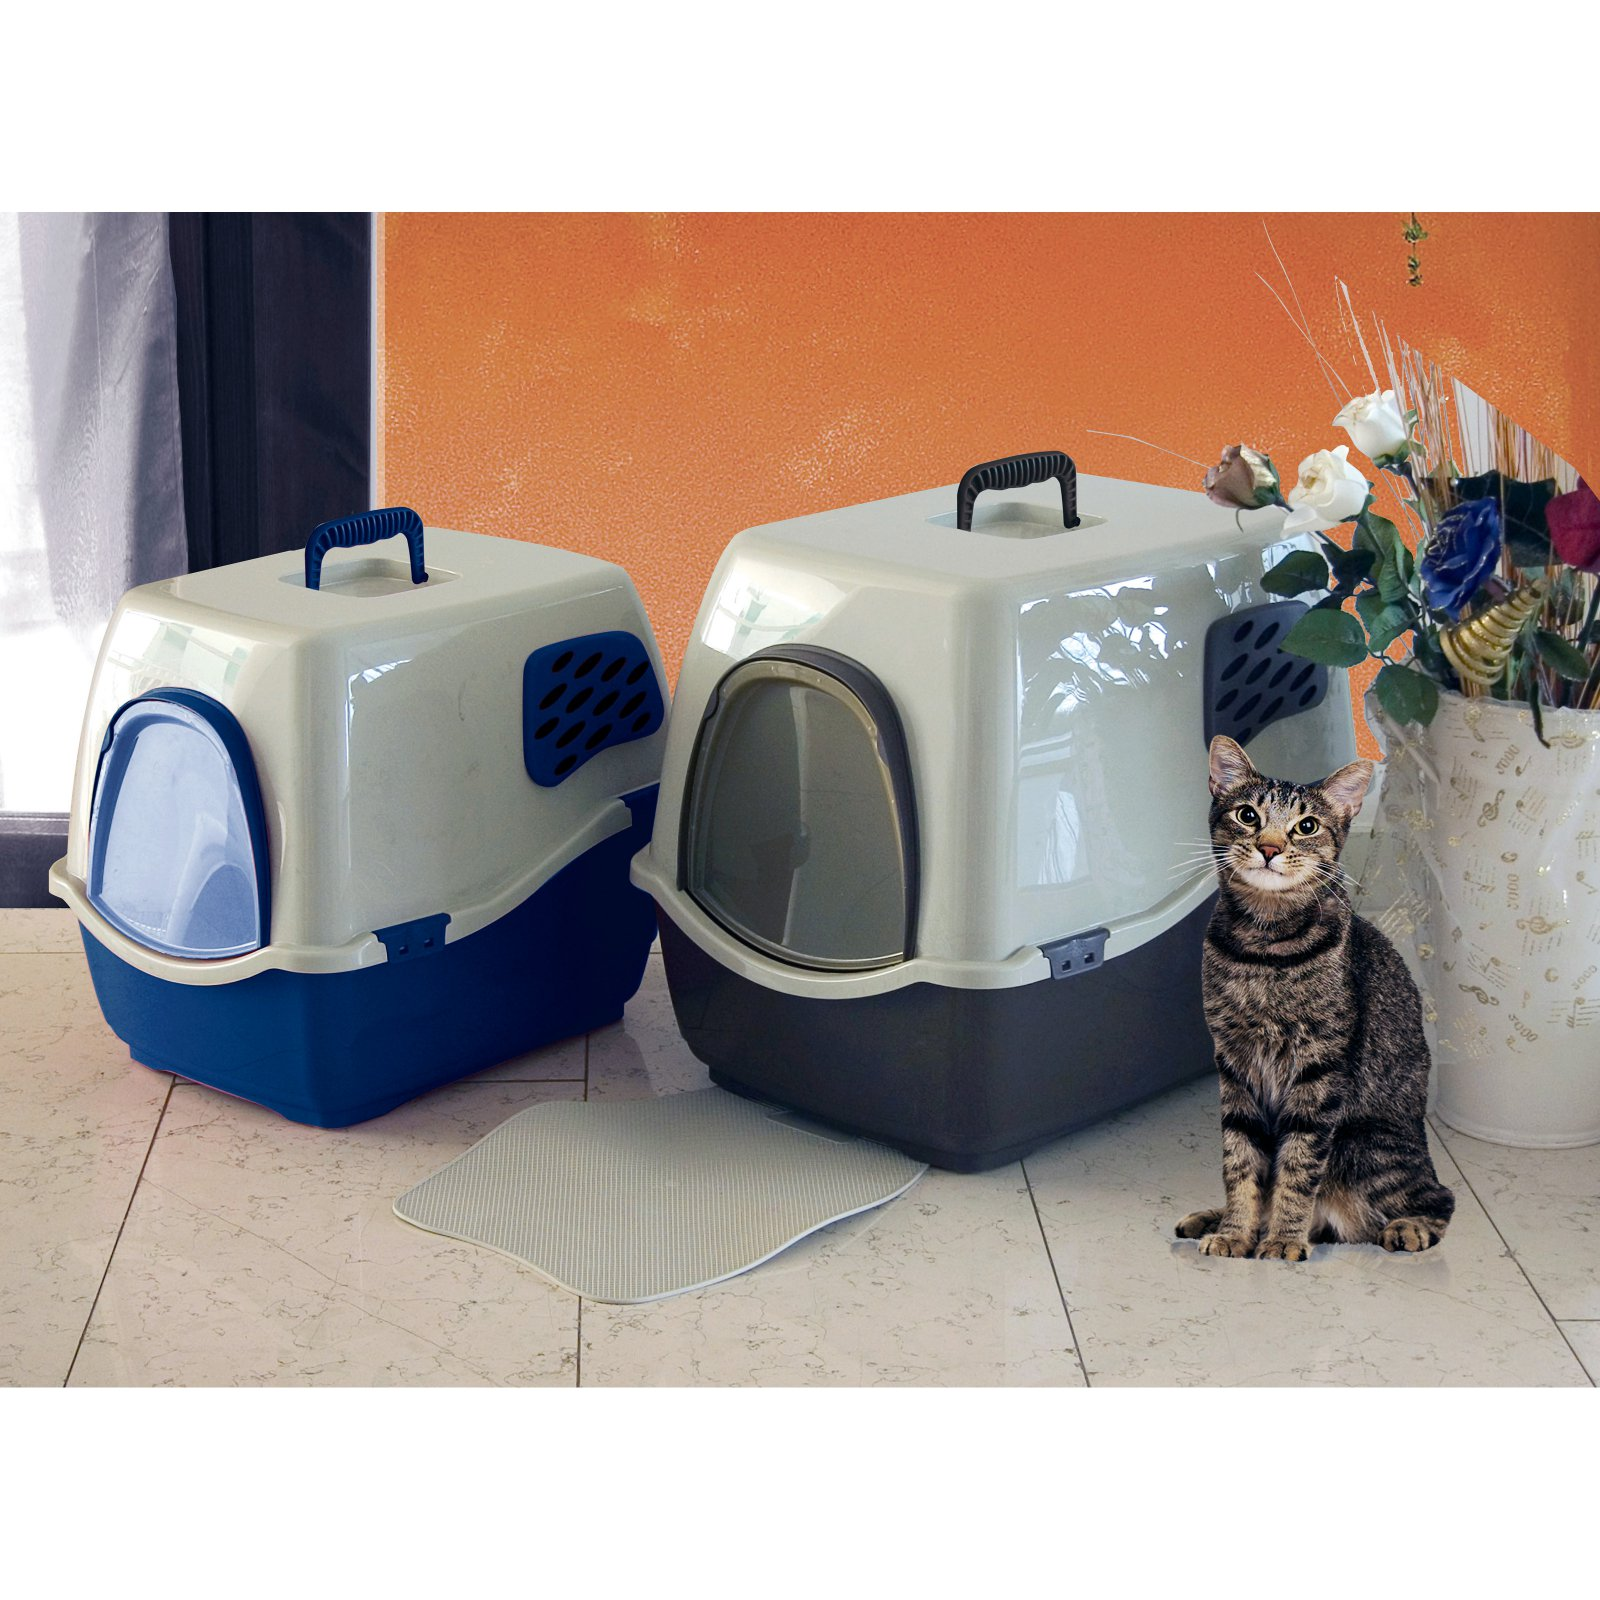 Marchioro Bill 1F Enclosed Cat Litter Pan